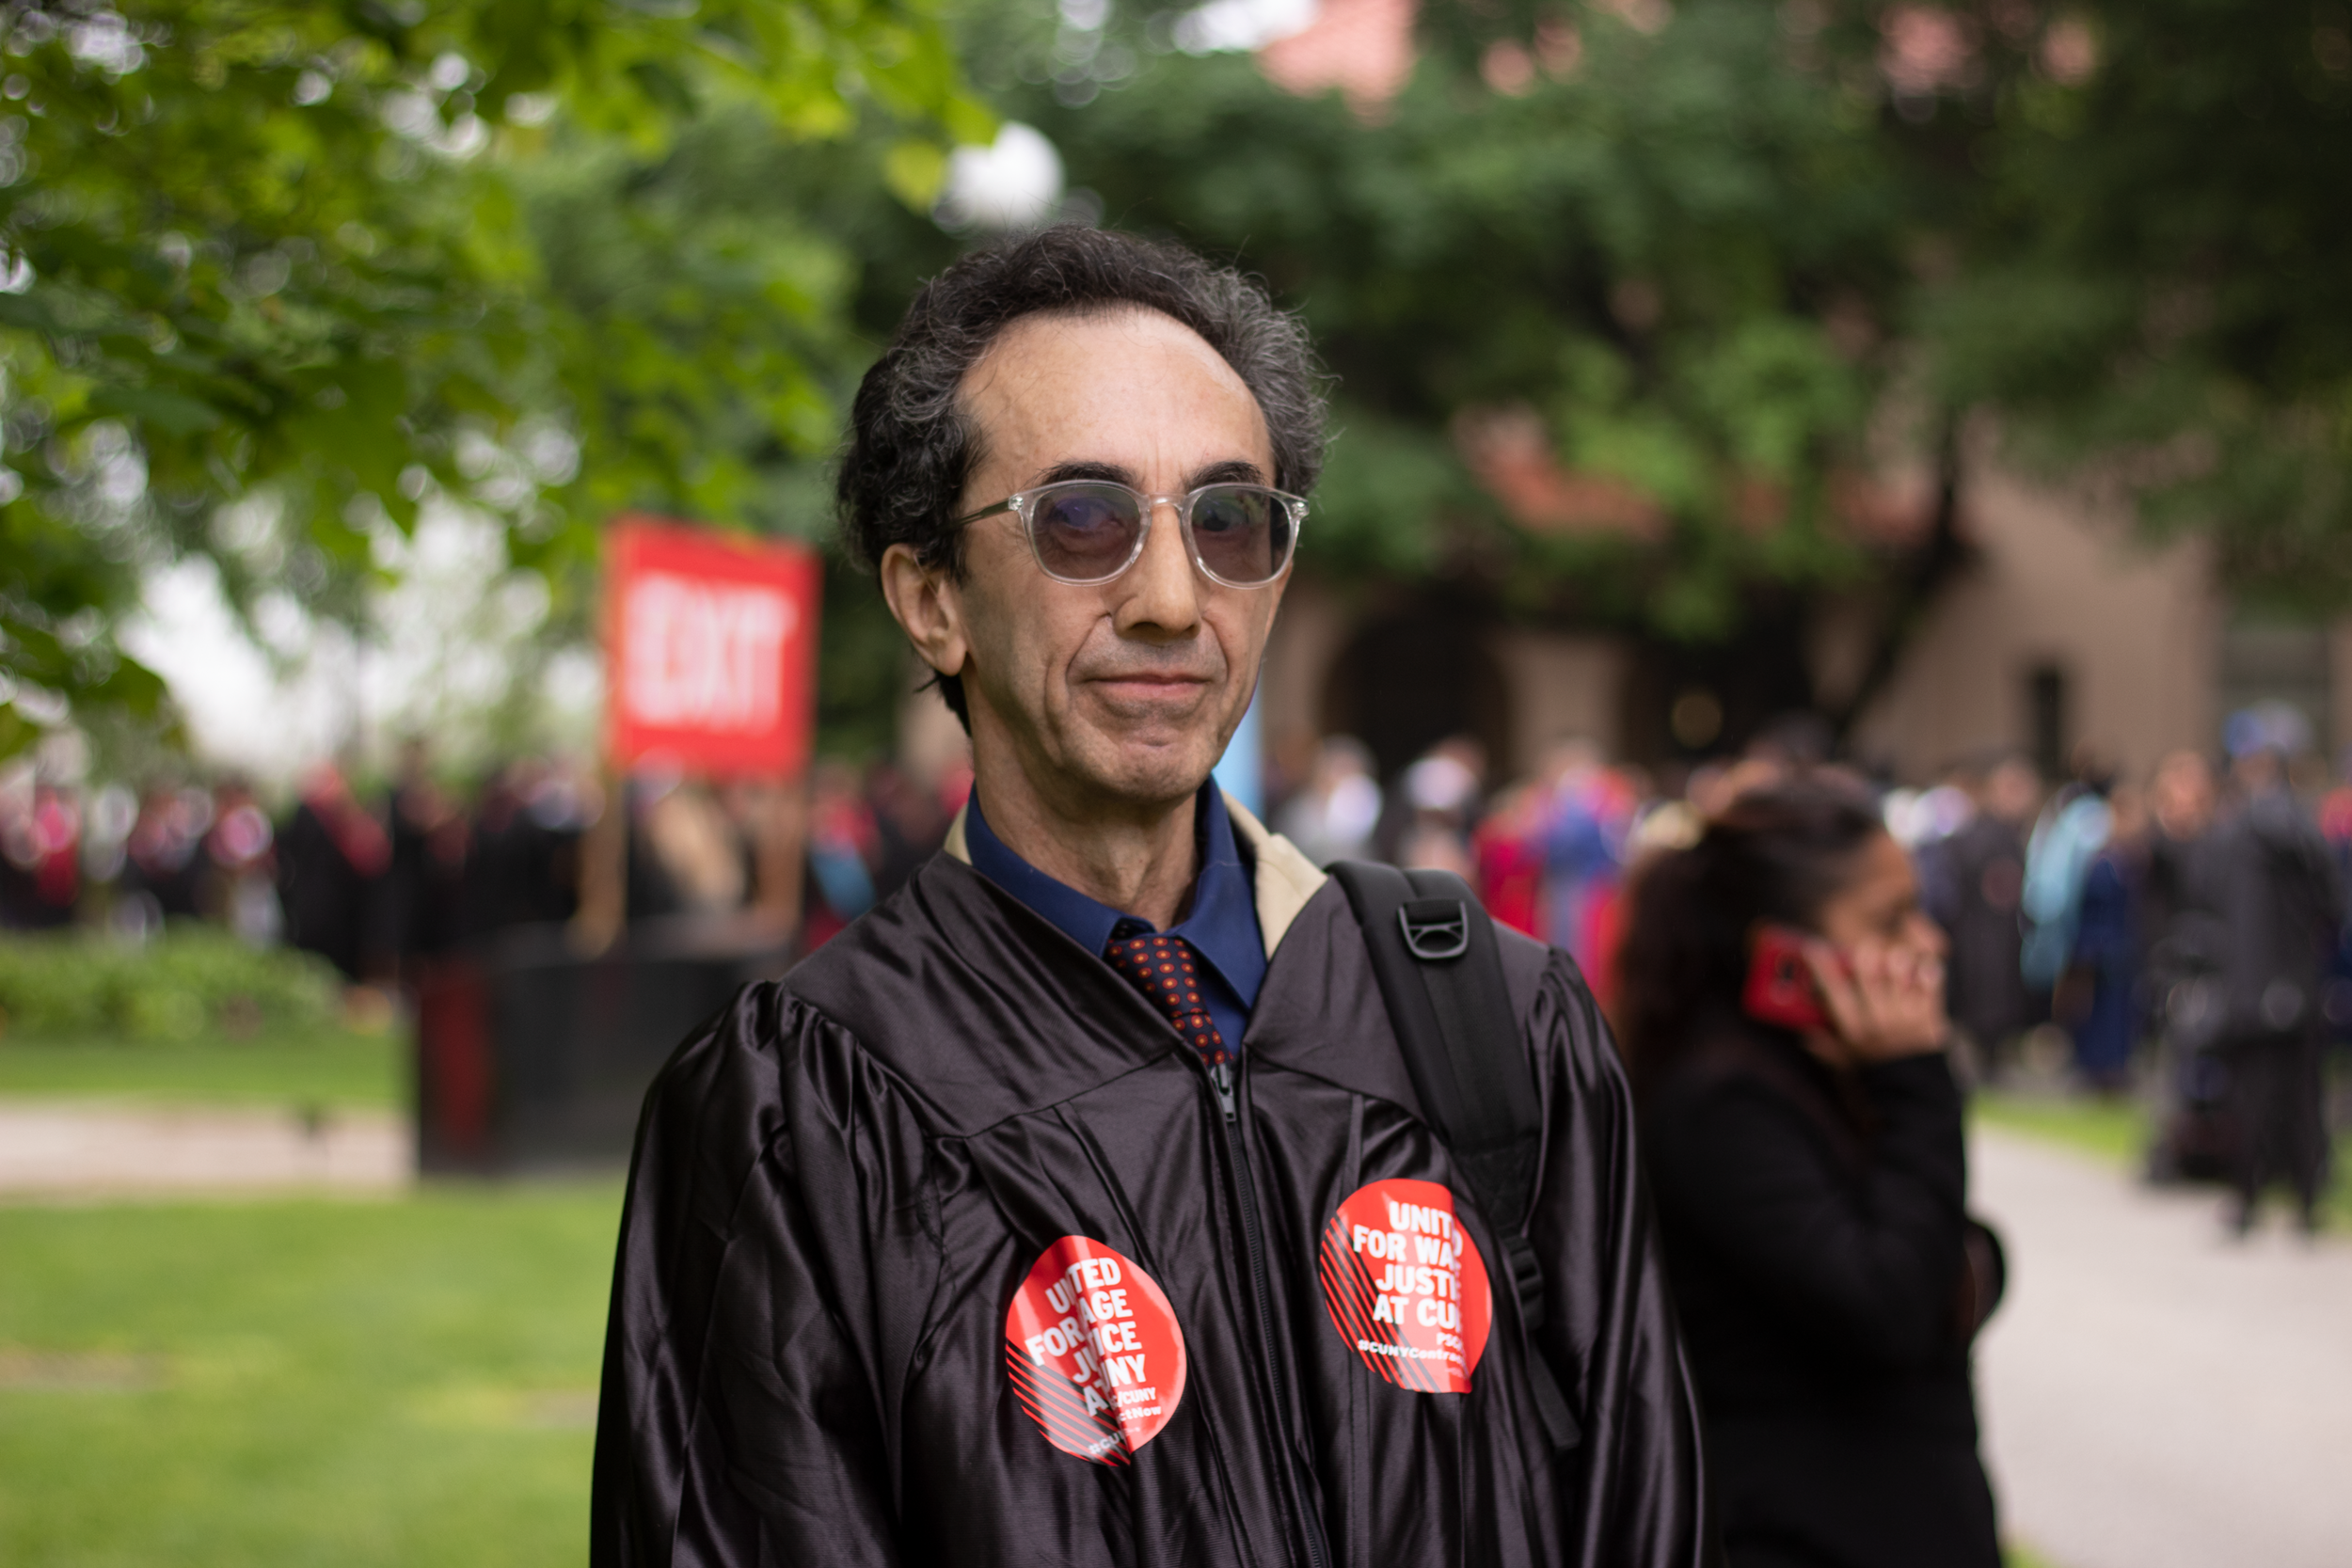 Media studies professor Jonathan Buchsbaum demonstrates union solidarity at Queens College commencement. Eagle photo by Victoria Merlino.